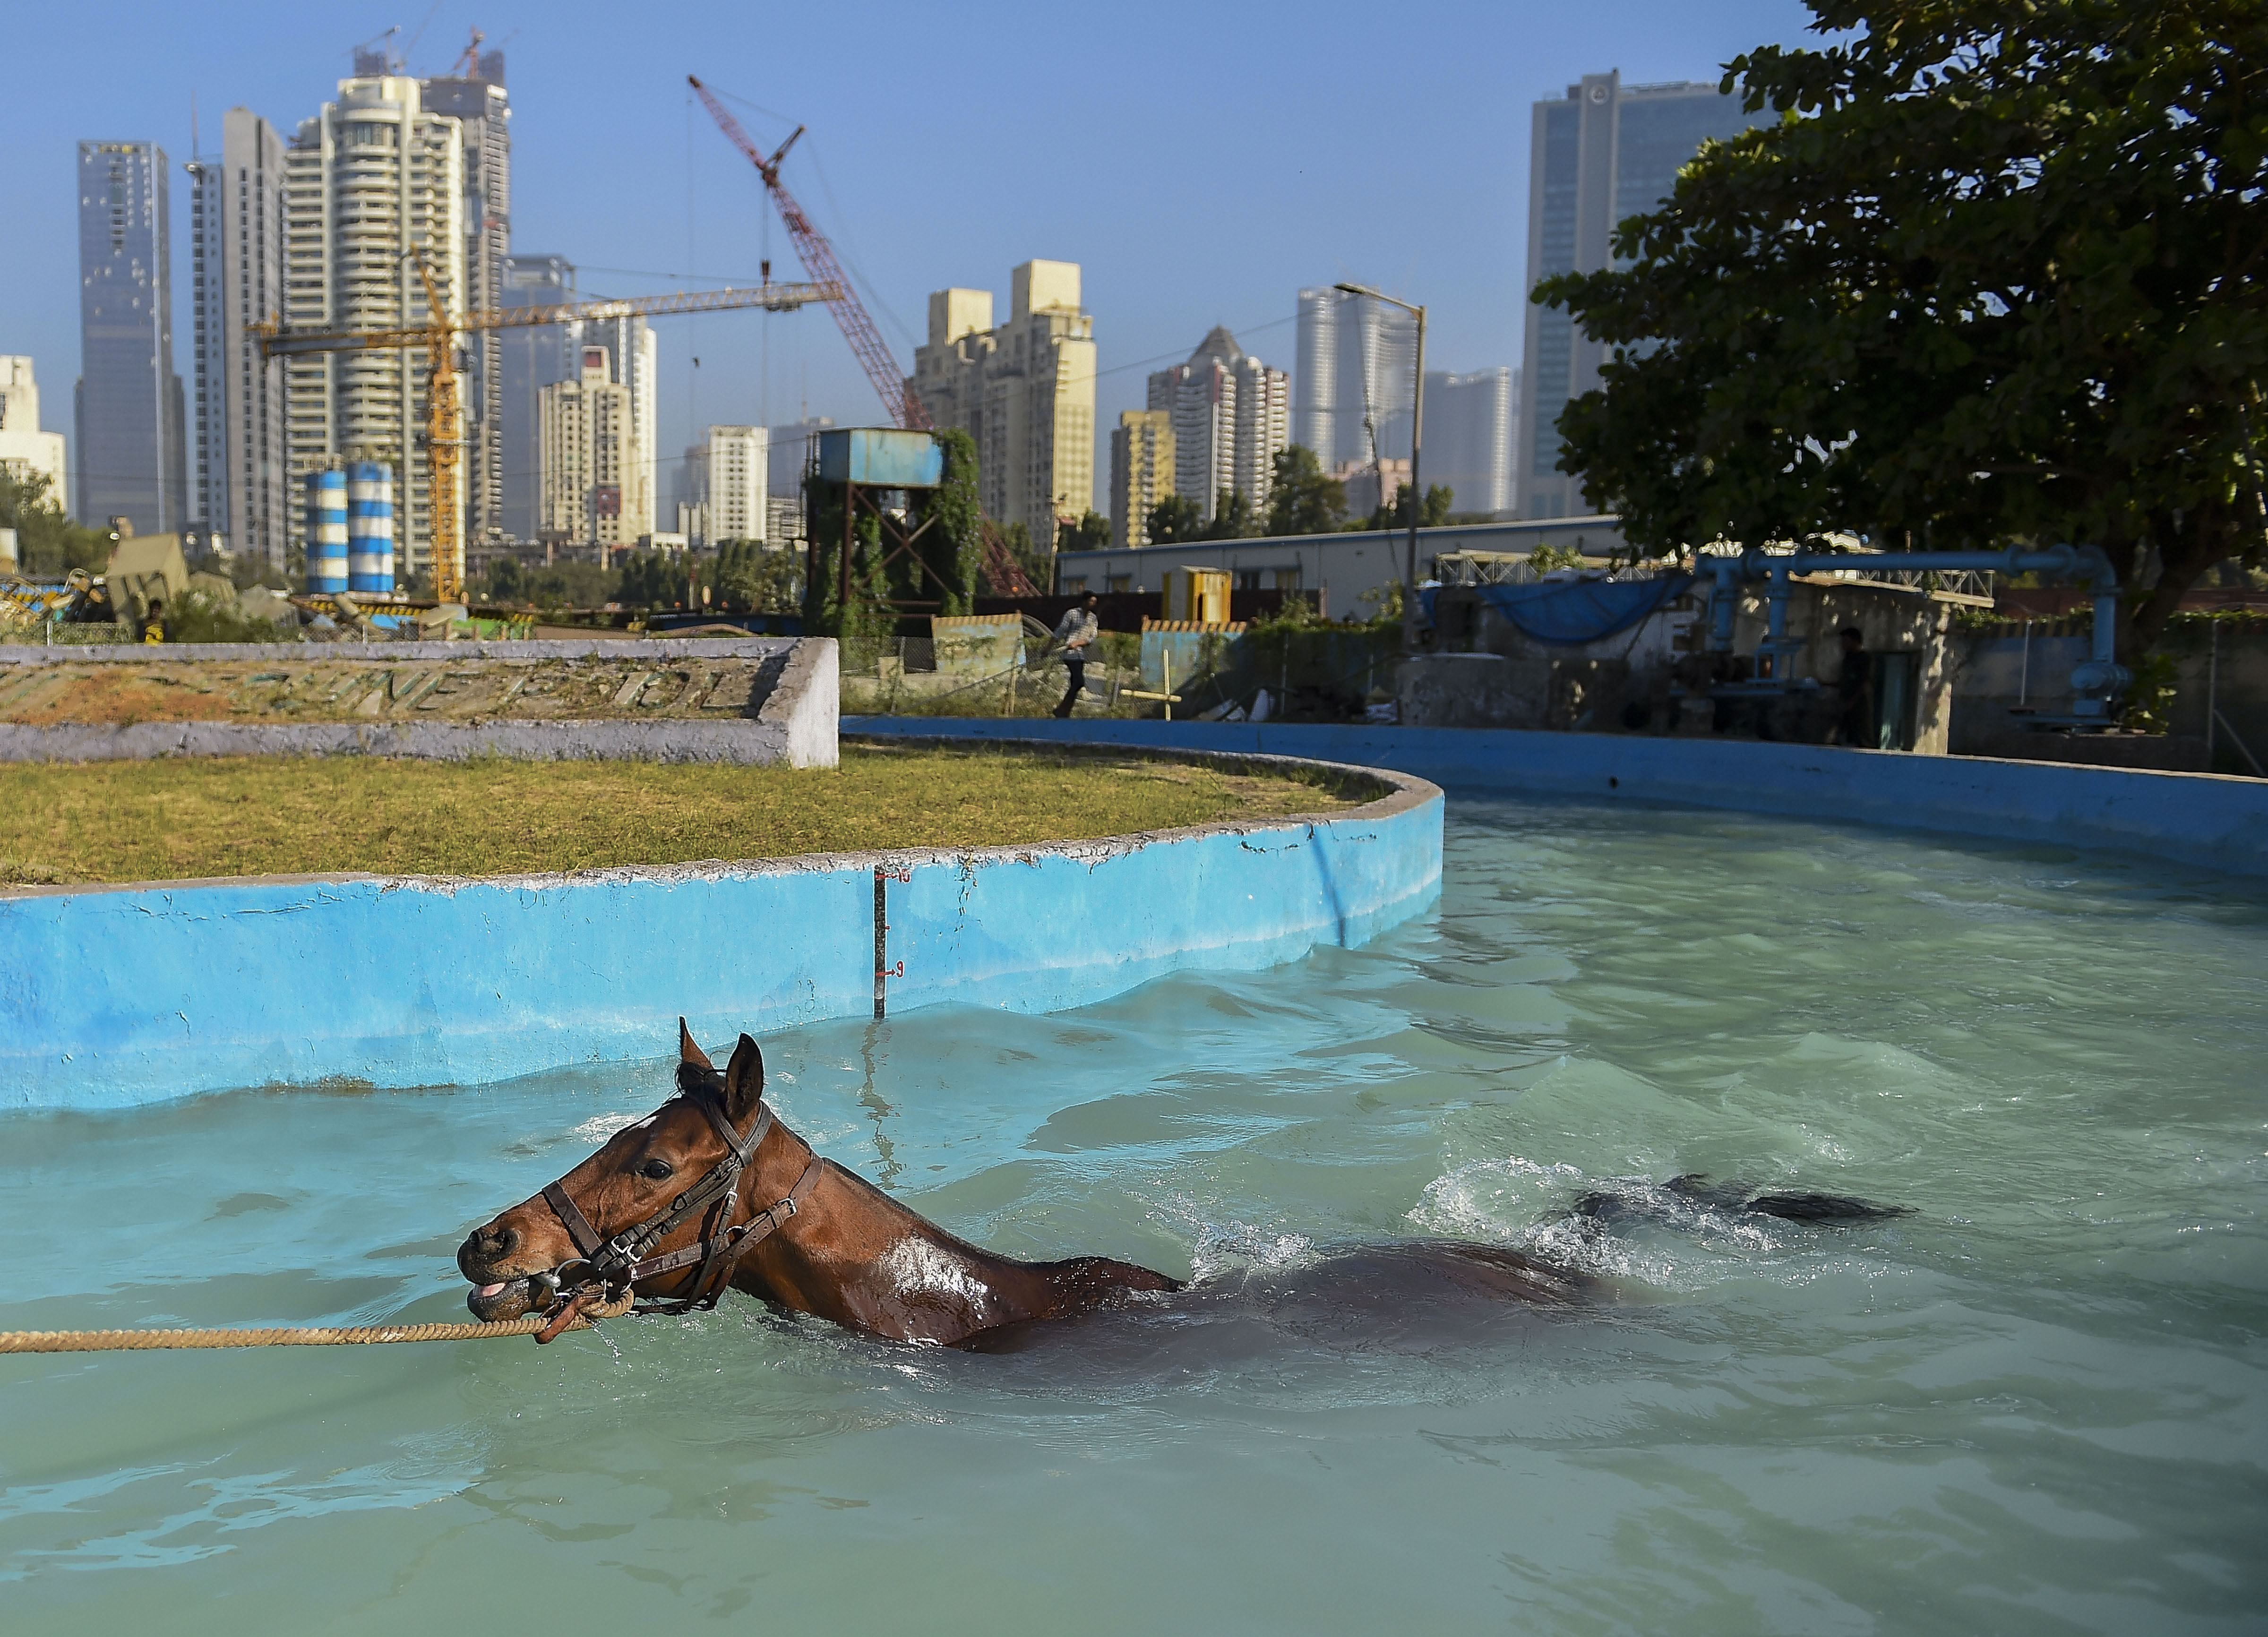 A horse is being trained at the Mahalaxmi Race Course for the Indian Derby in Mumbai